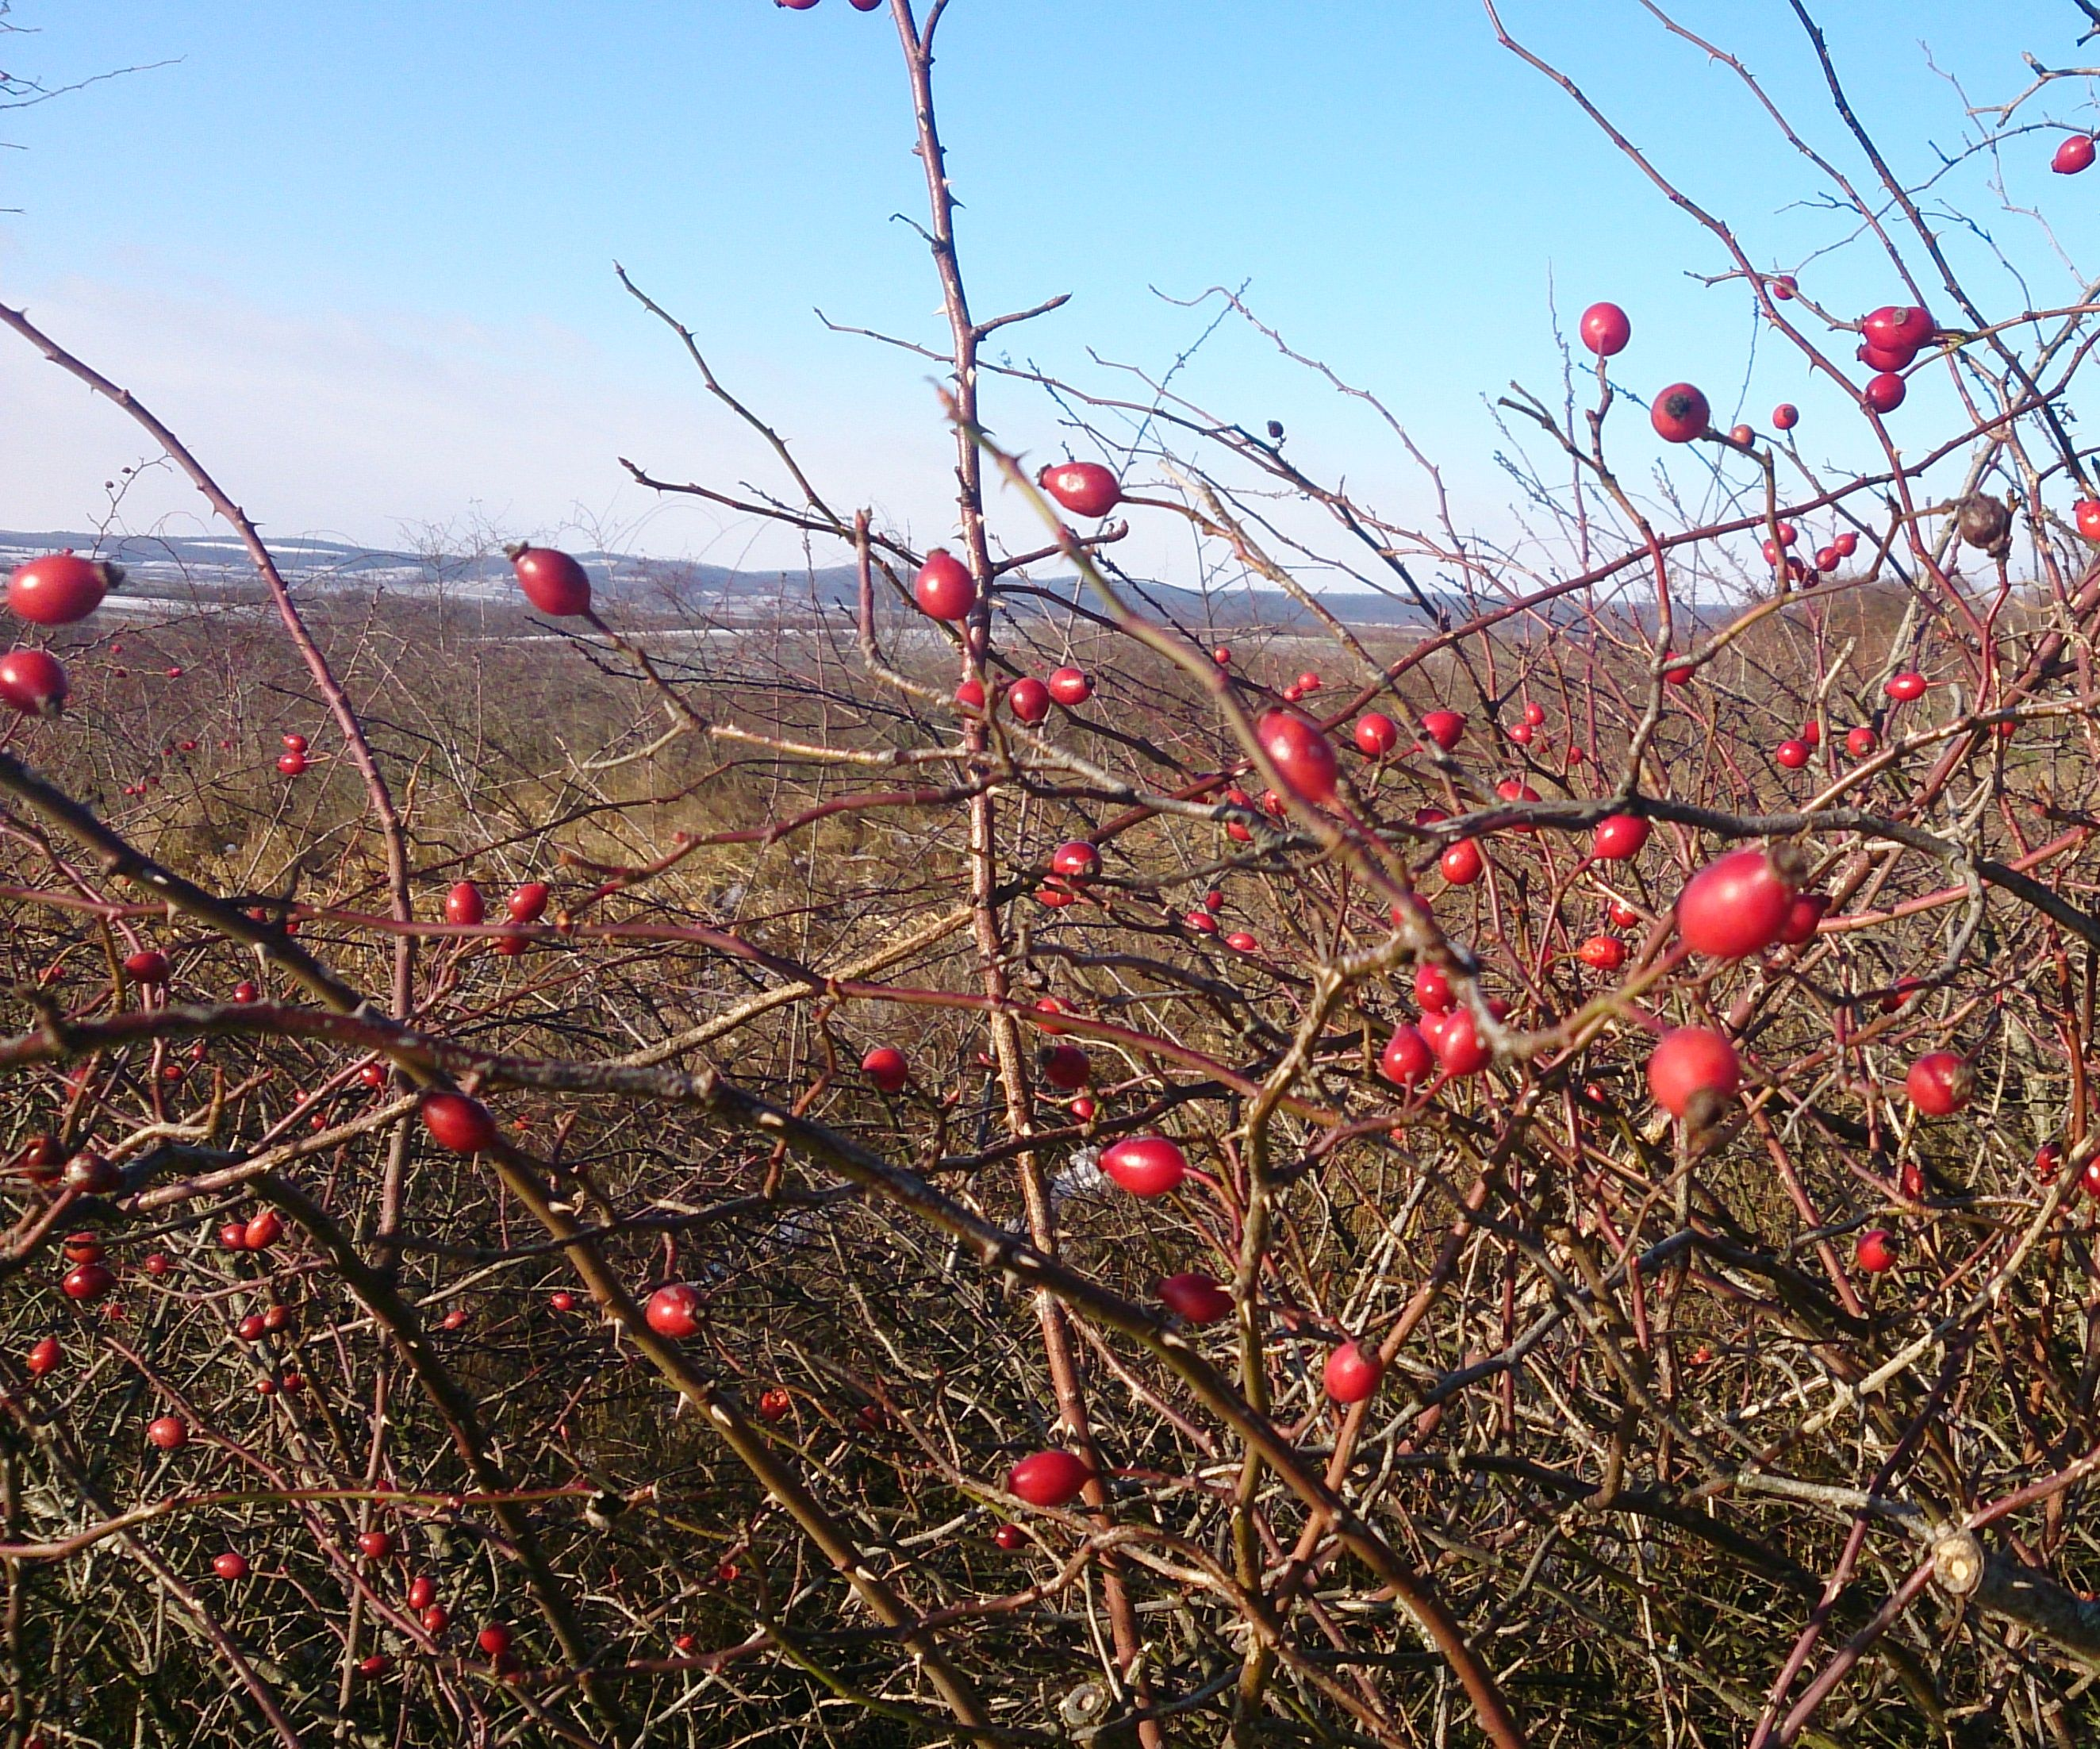 How to eat a rose hip